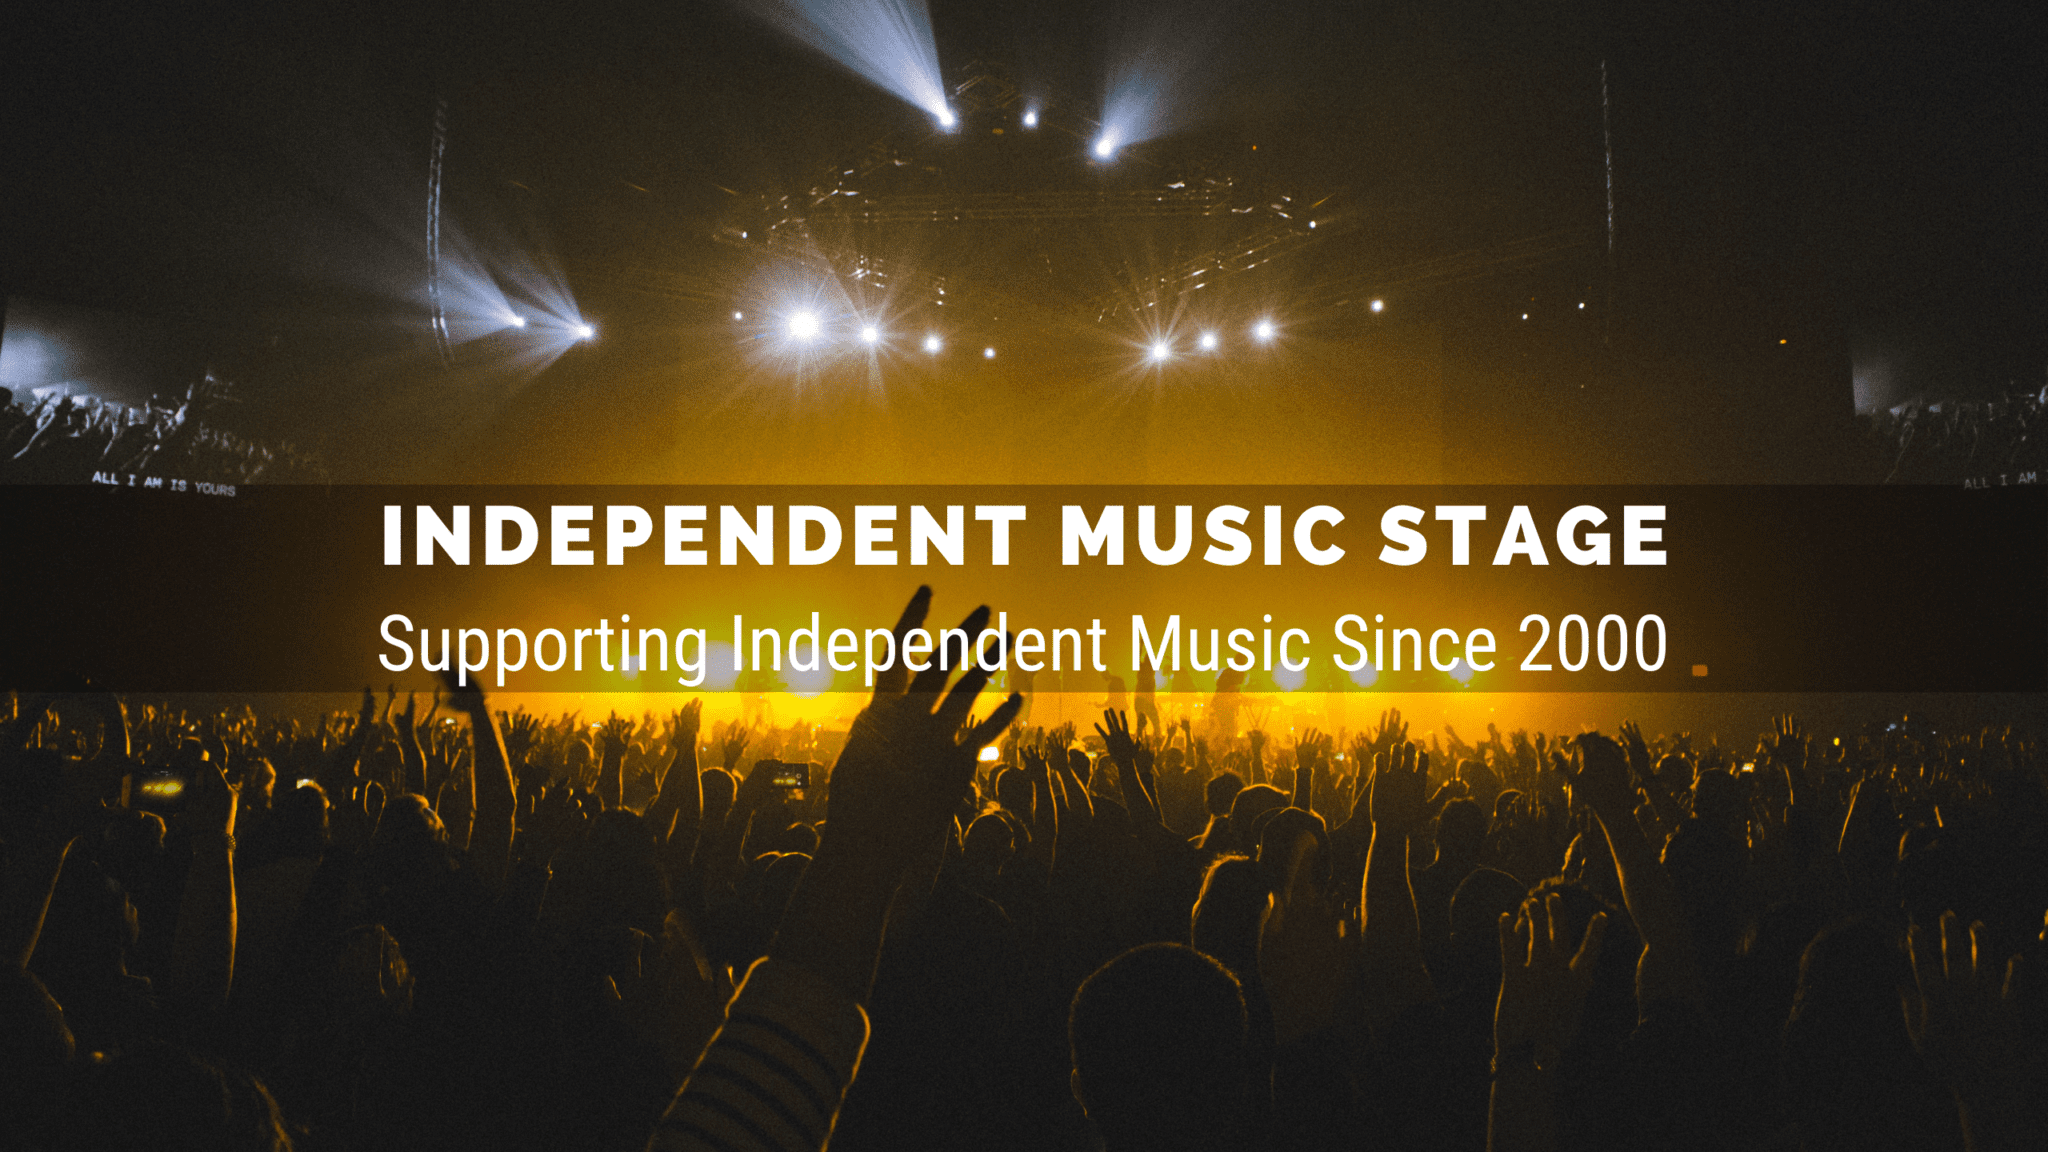 Independent Music Stage